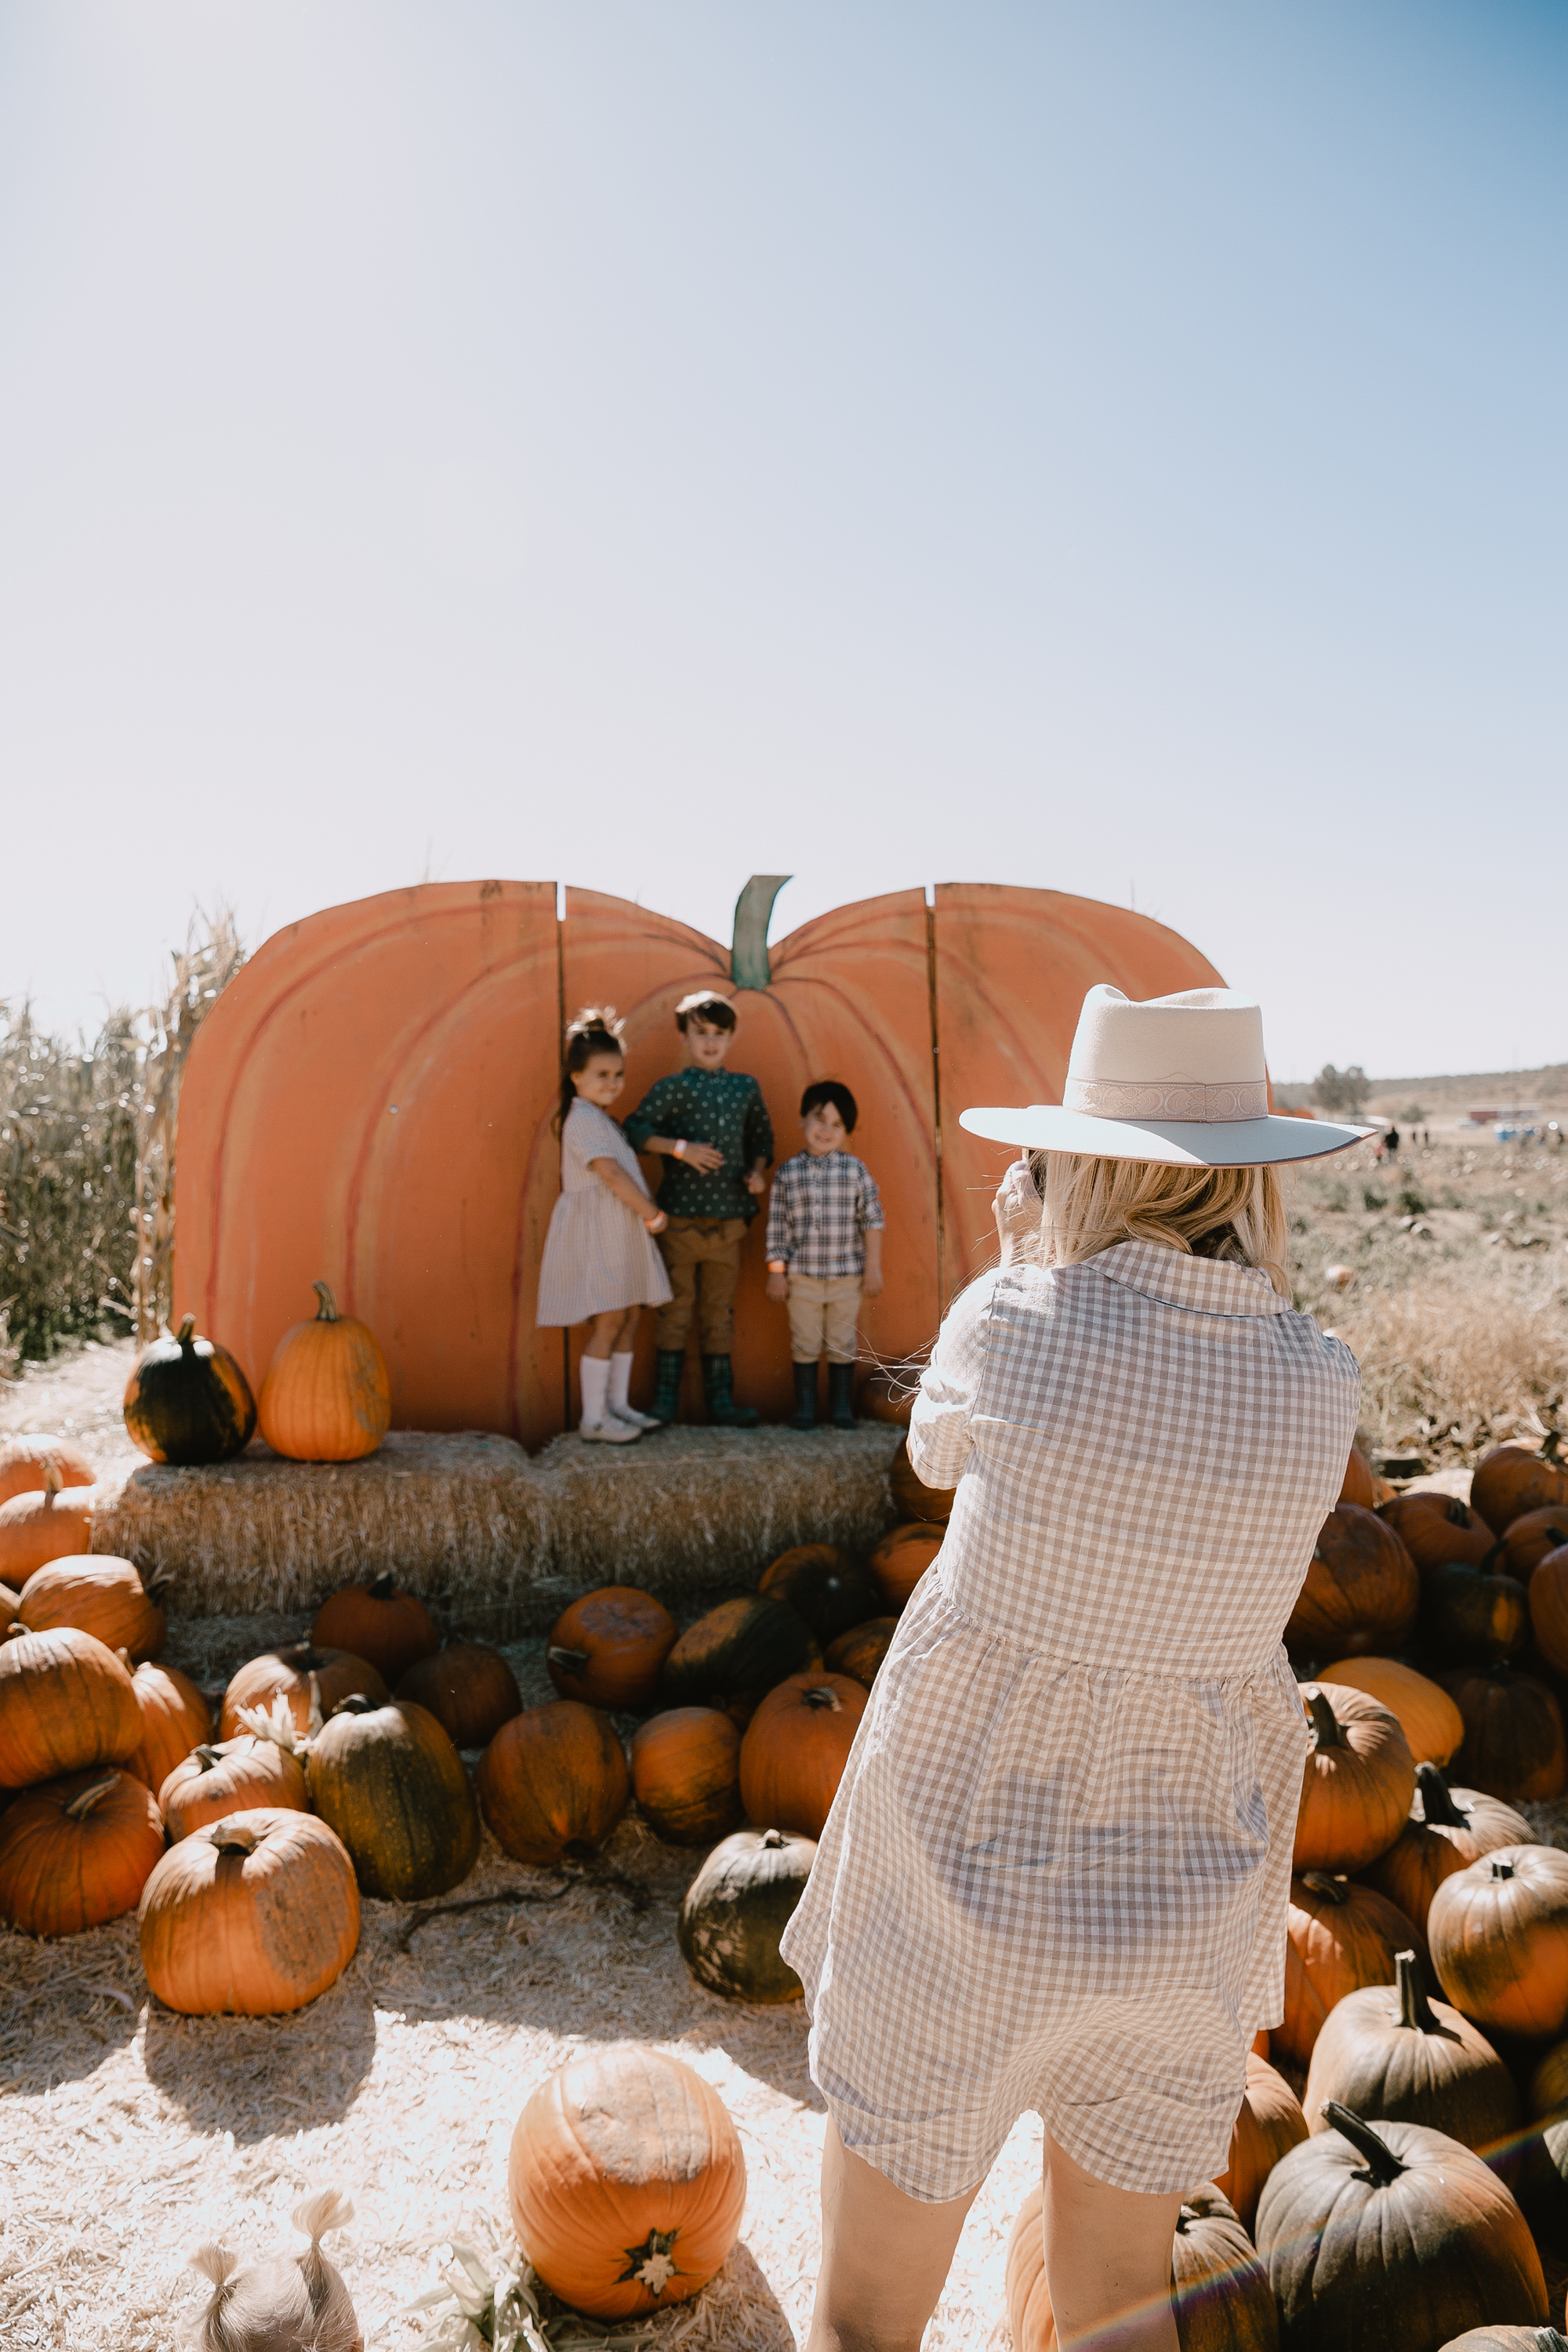 always gotta get those cheesy photo opps at the pumpkin patch! love these three kiddos and doing fun fall activities with them! #fallfun #fallfashion #pumpkinpatch